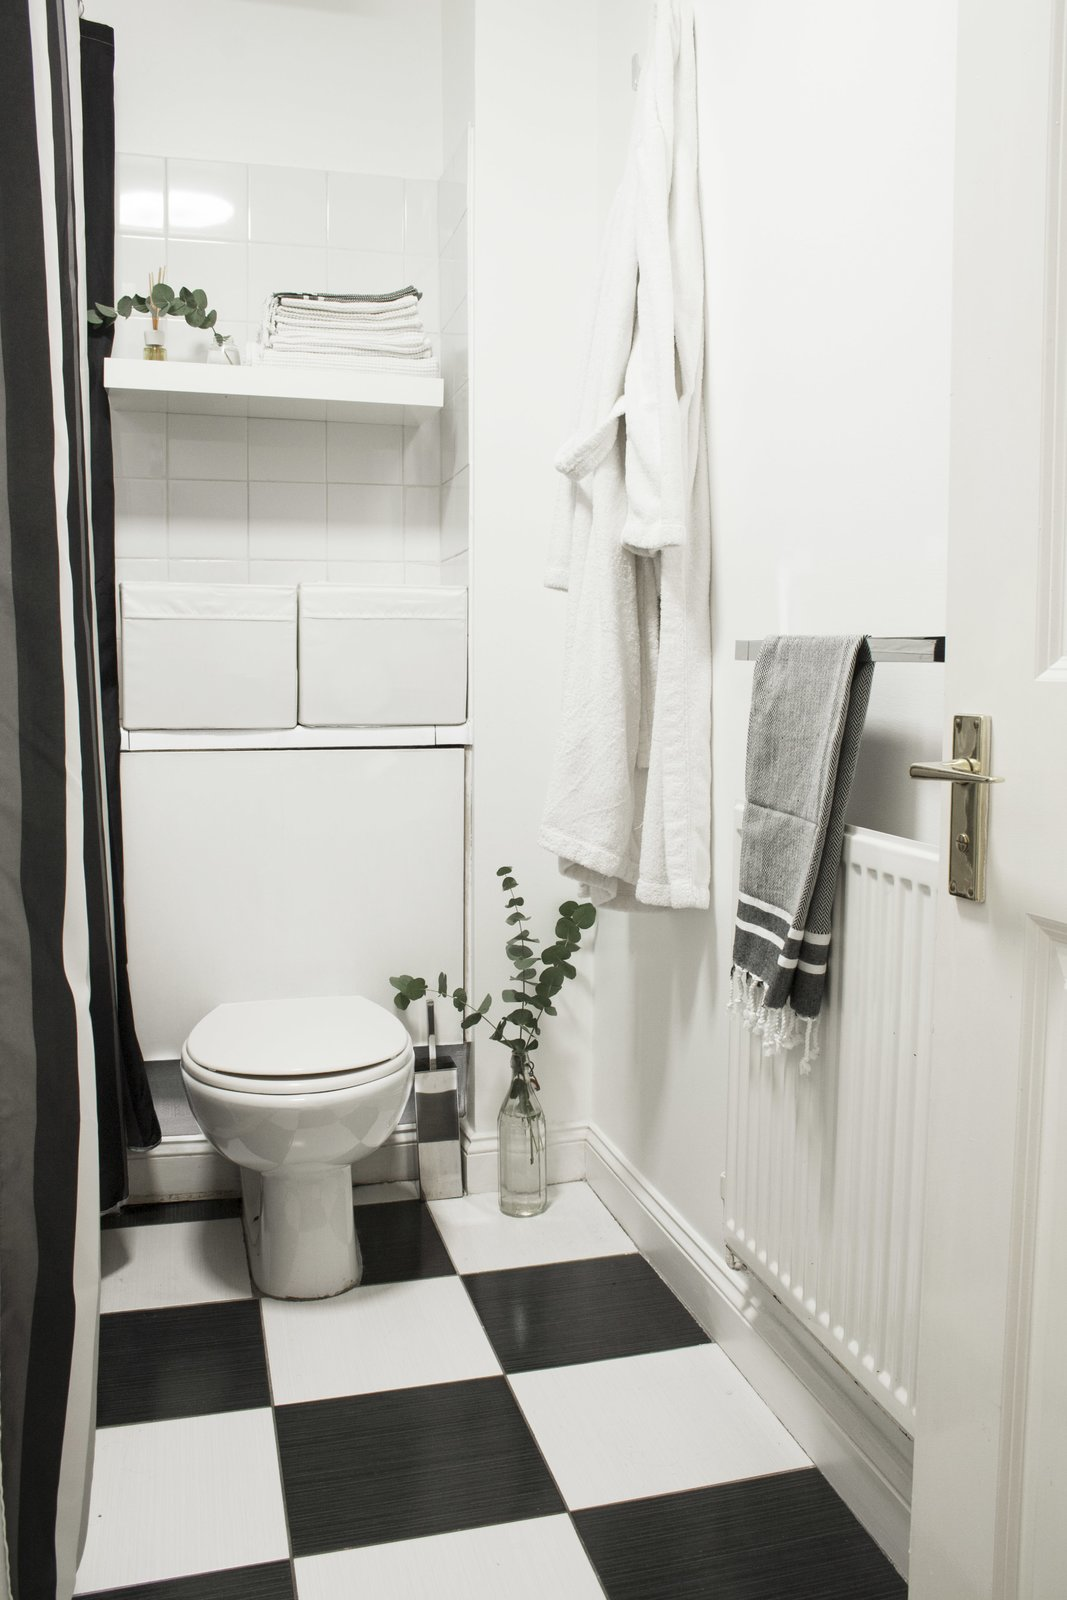 Though their wish was to redo the whole bathroom, they decided to stick to a budget and preserve the original black-and-white tiles, which are common in London flats. They ended up keeping it simple and accentuating the color palette with a black-and-white shower curtain and some new white storage elements. Two Architects Revive Their London Flat With Minimal Furnishings and a Fresh Dose of White - Photo 8 of 8